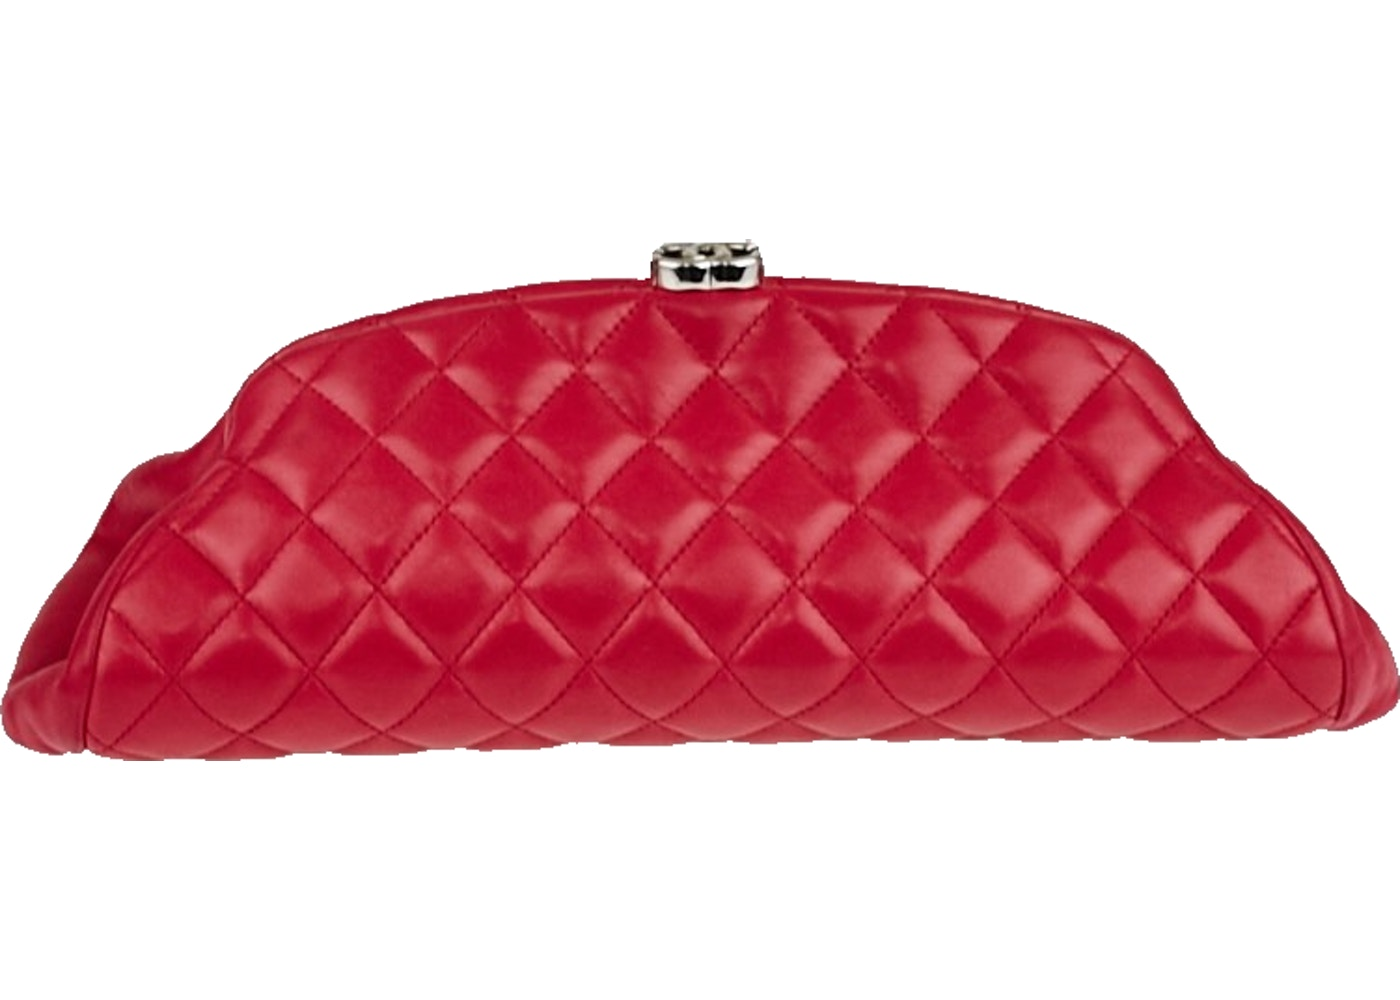 047348dd720ead Sell. or Ask. View All Bids. Chanel Timeless Clutch Quilted Red